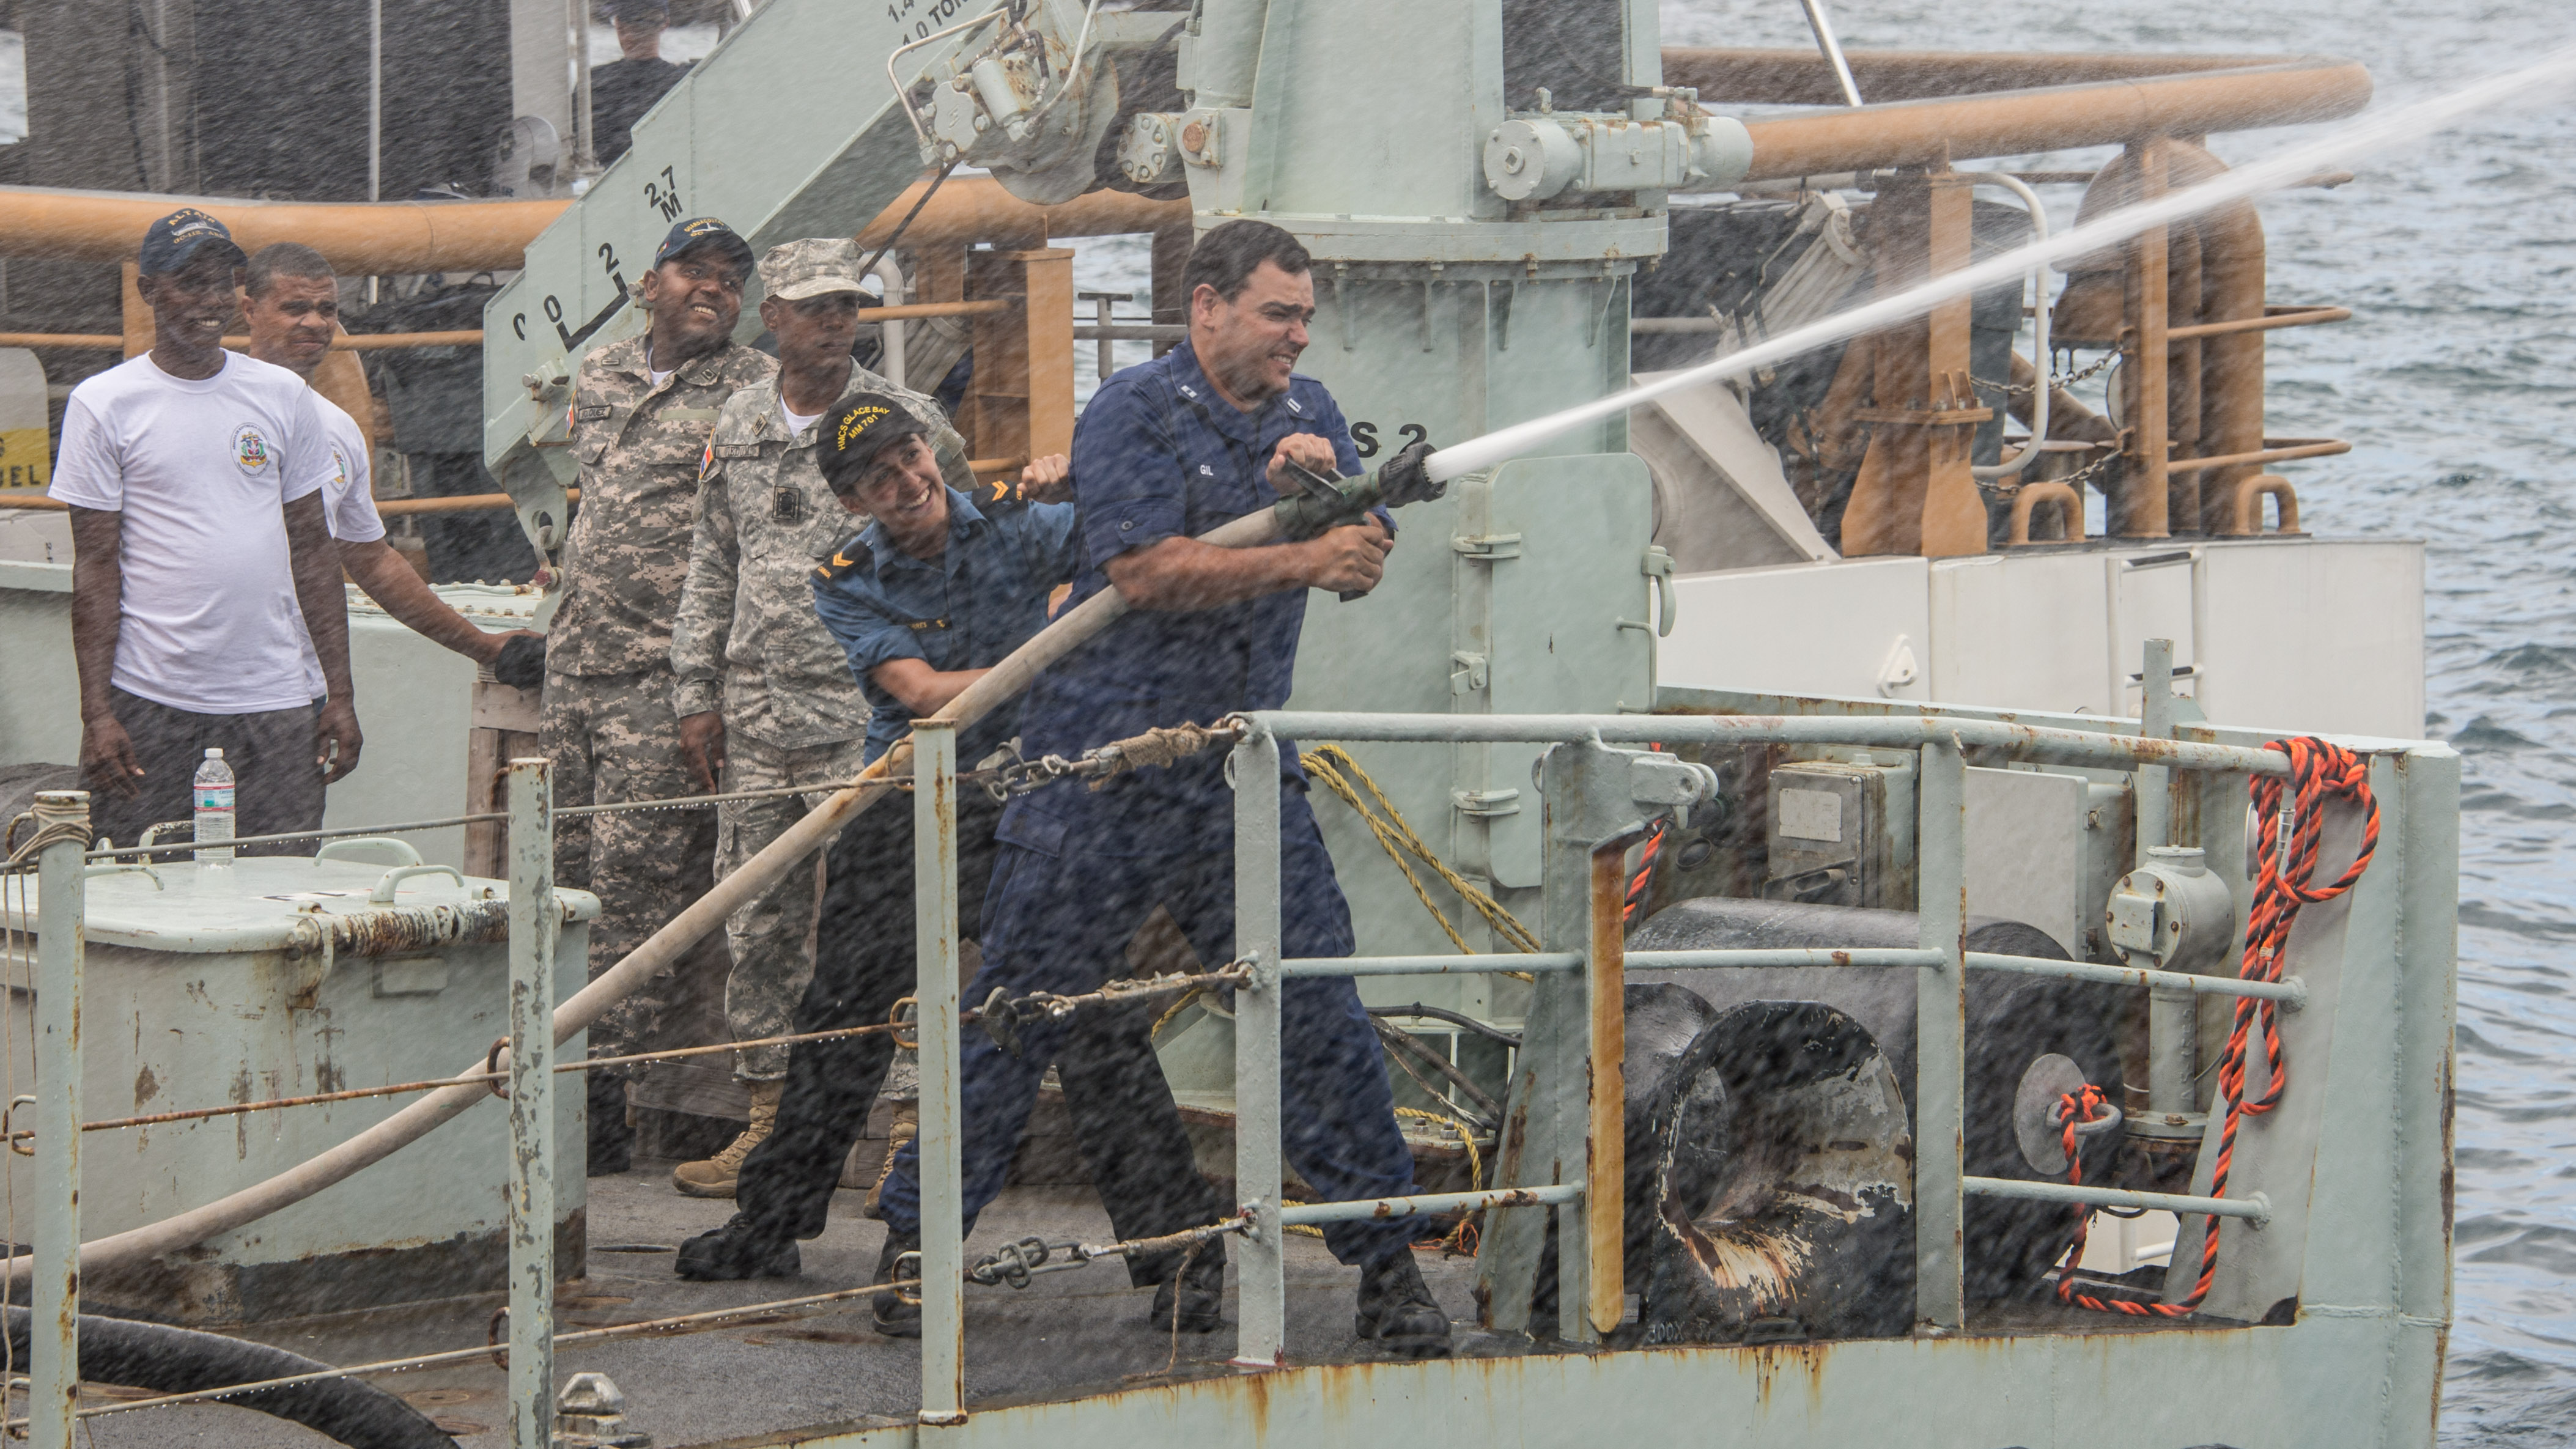 LS Vanessa Conde Torres, Marine Engineering Systems Operator on HMCS Glace Bay, stabilizes a member of the US Coast Guard as he operates the fire hose at maximum power during Ex TRADEWINDS in St. Kitts and Nevis, June 2015.